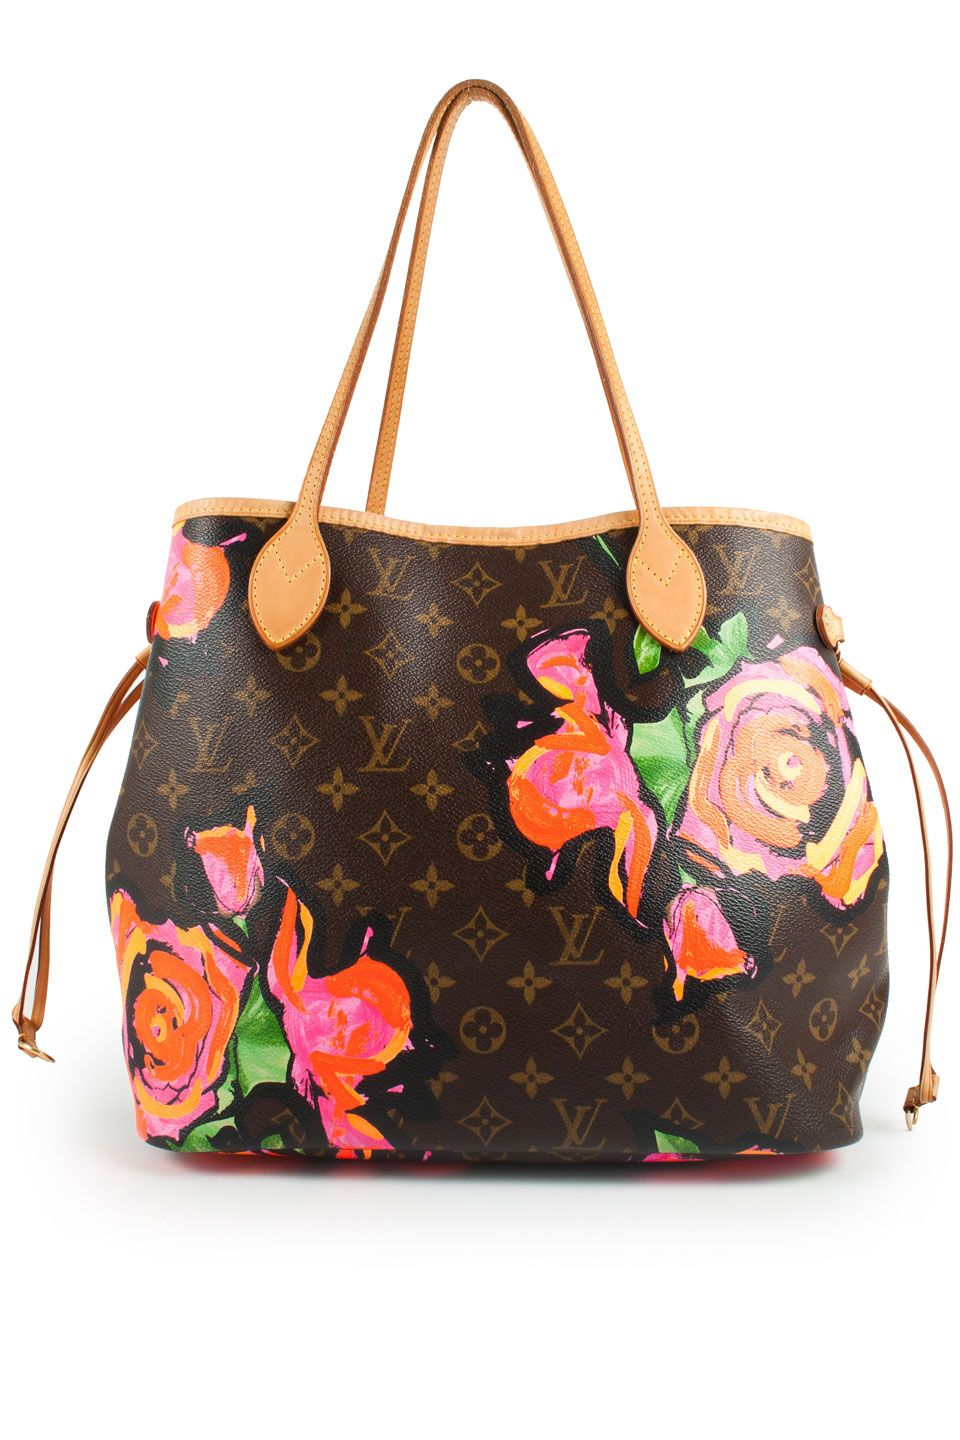 3c8609ddd7b1 louis vuitton...neverfull roses stephen sprouse gm in monogram...this is ME!